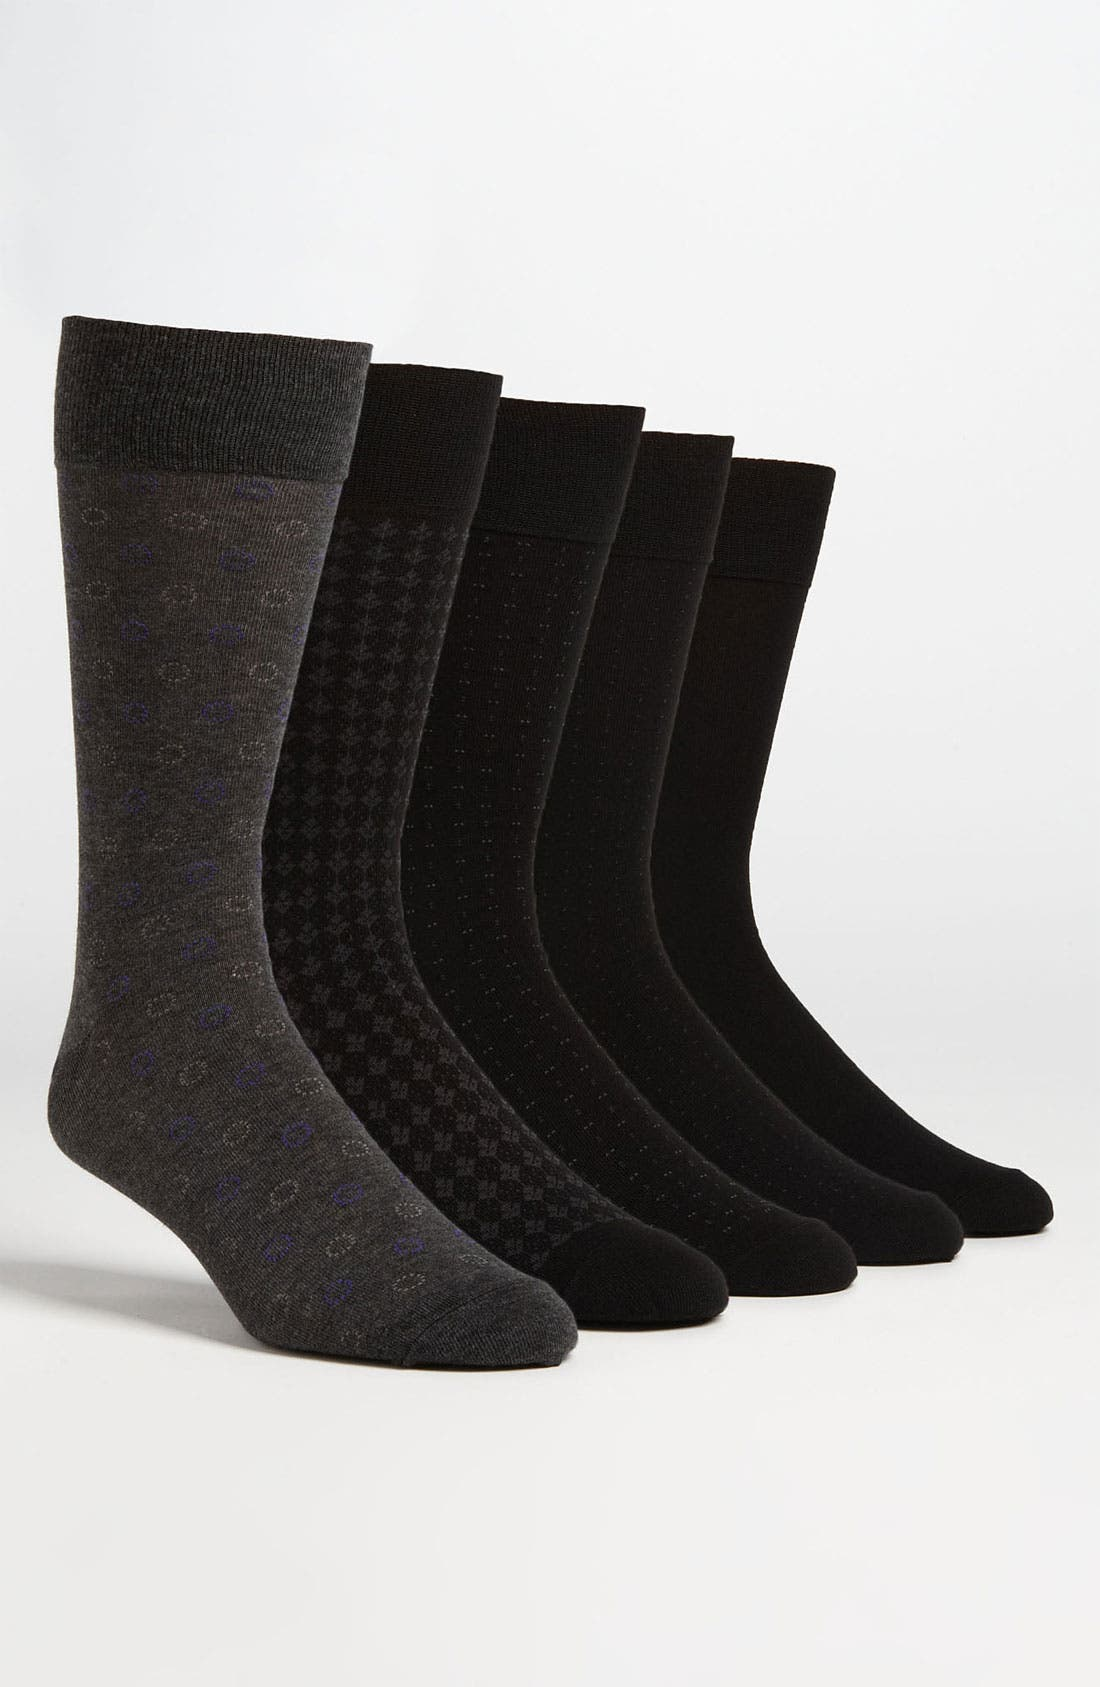 Alternate Image 1 Selected - Cole Haan Assorted Socks (5-Pack)